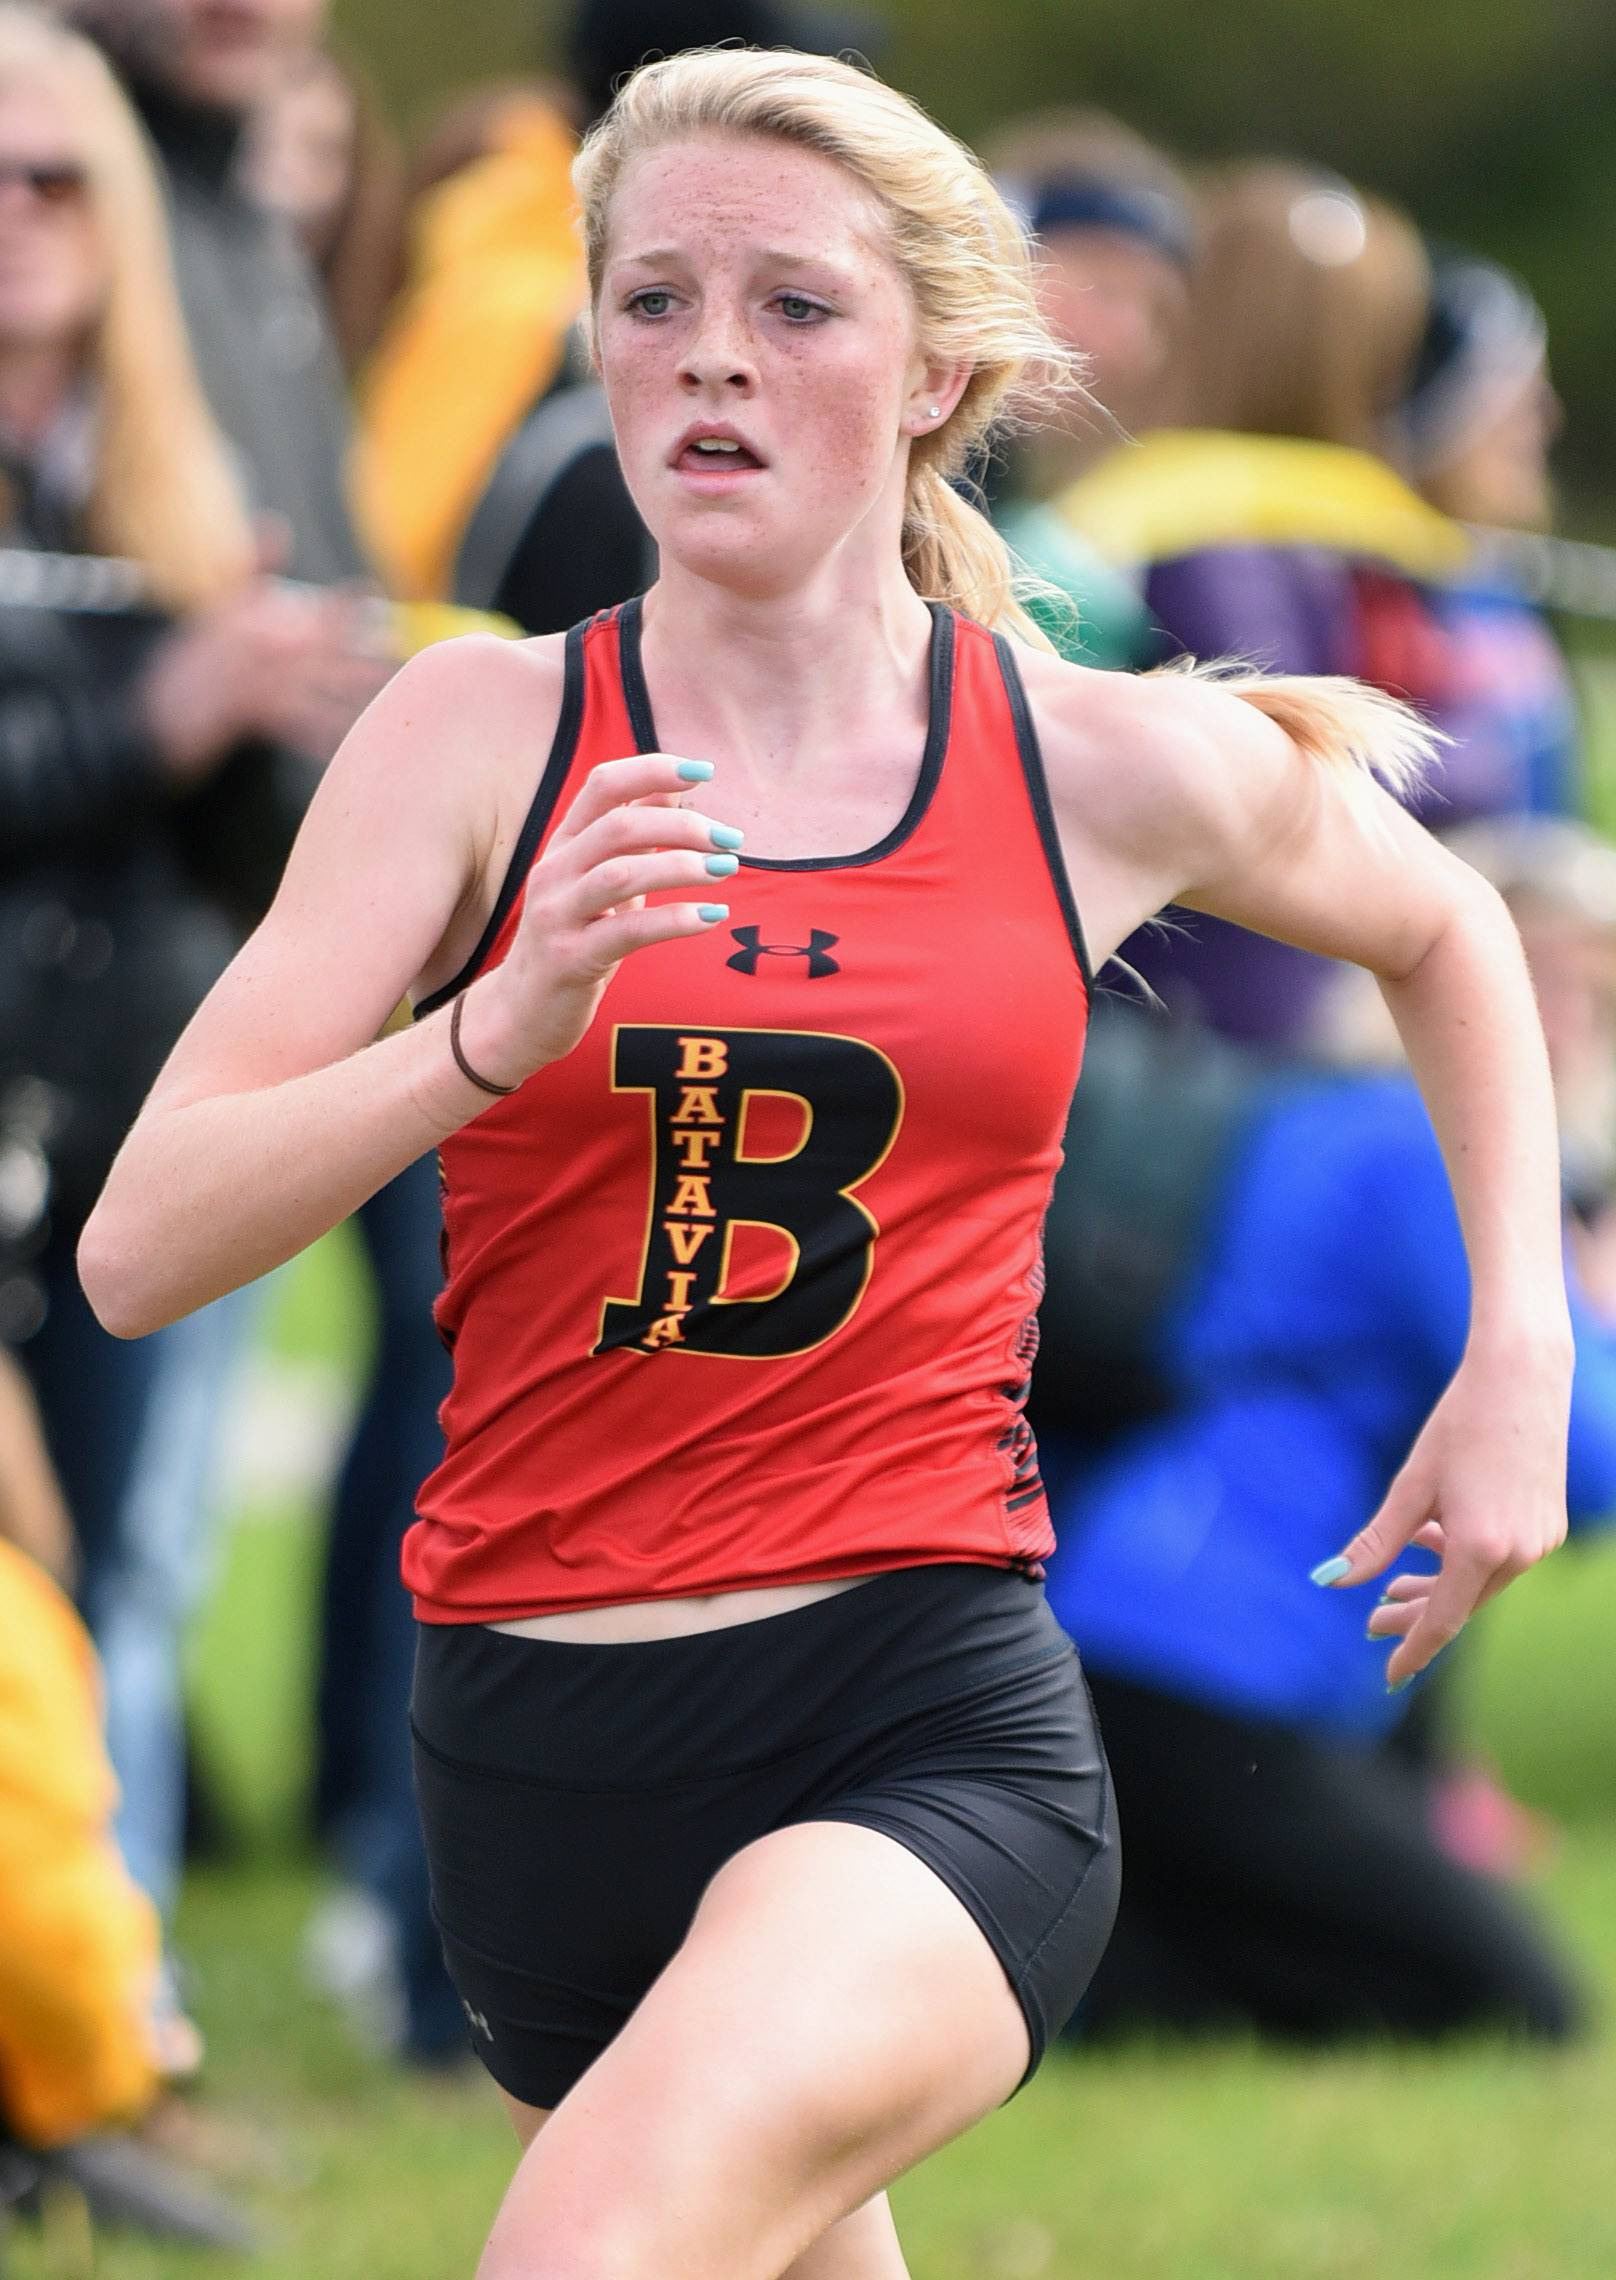 Batavia's Emma Stephens takes fourth place in the girls varsity run with a time of 17:57. 2 at the St. Charles North cross country invitational at LeRoy Oakes Saturday.